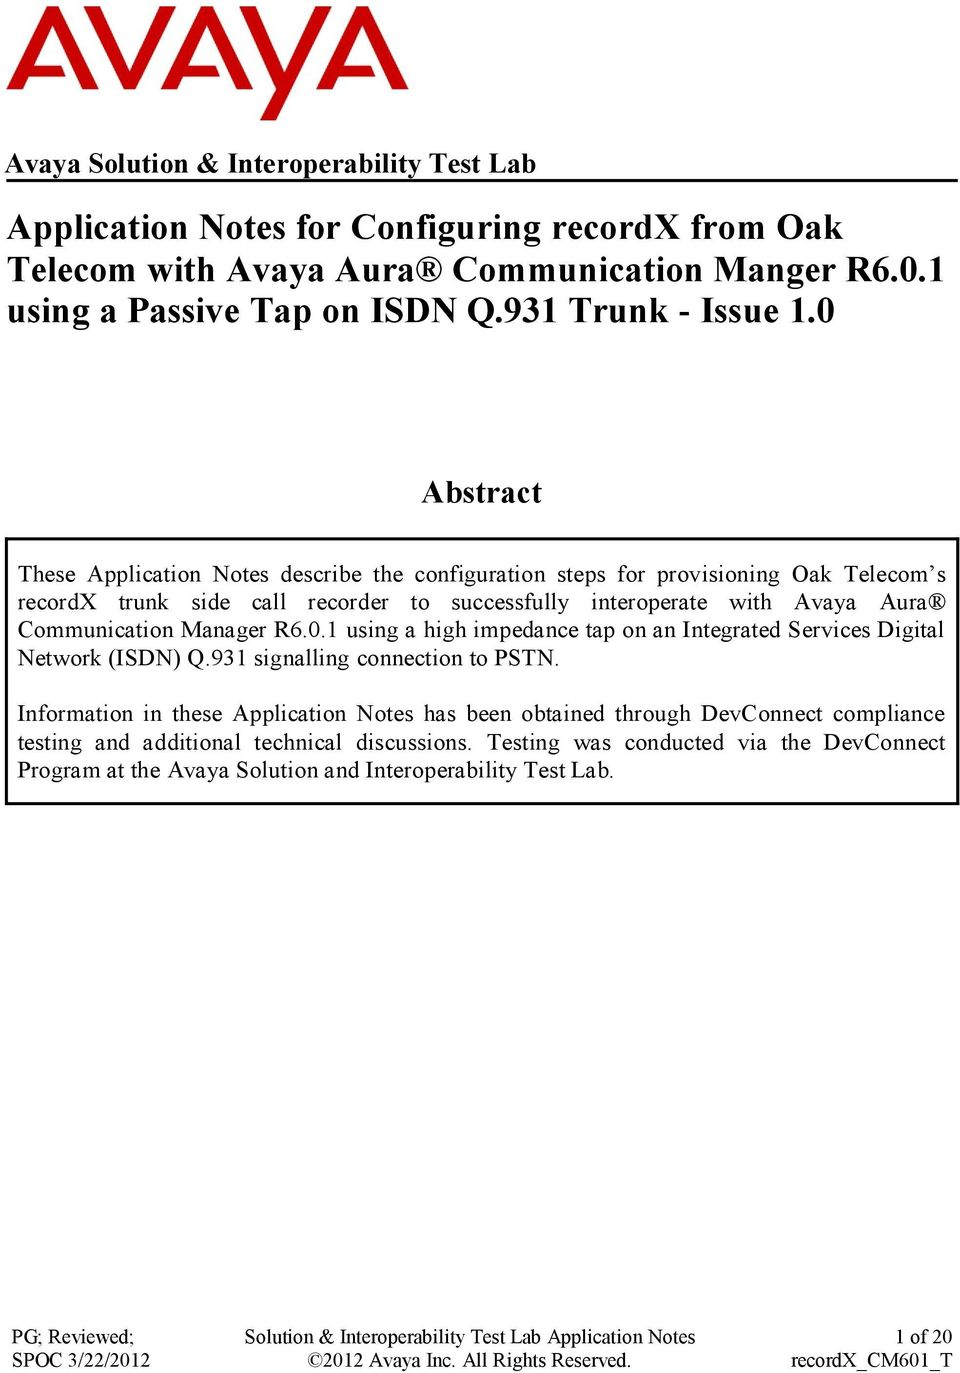 0 Abstract These Application Notes describe the configuration steps for provisioning Oak Telecom s recordx trunk side call recorder to successfully interoperate with Avaya Aura